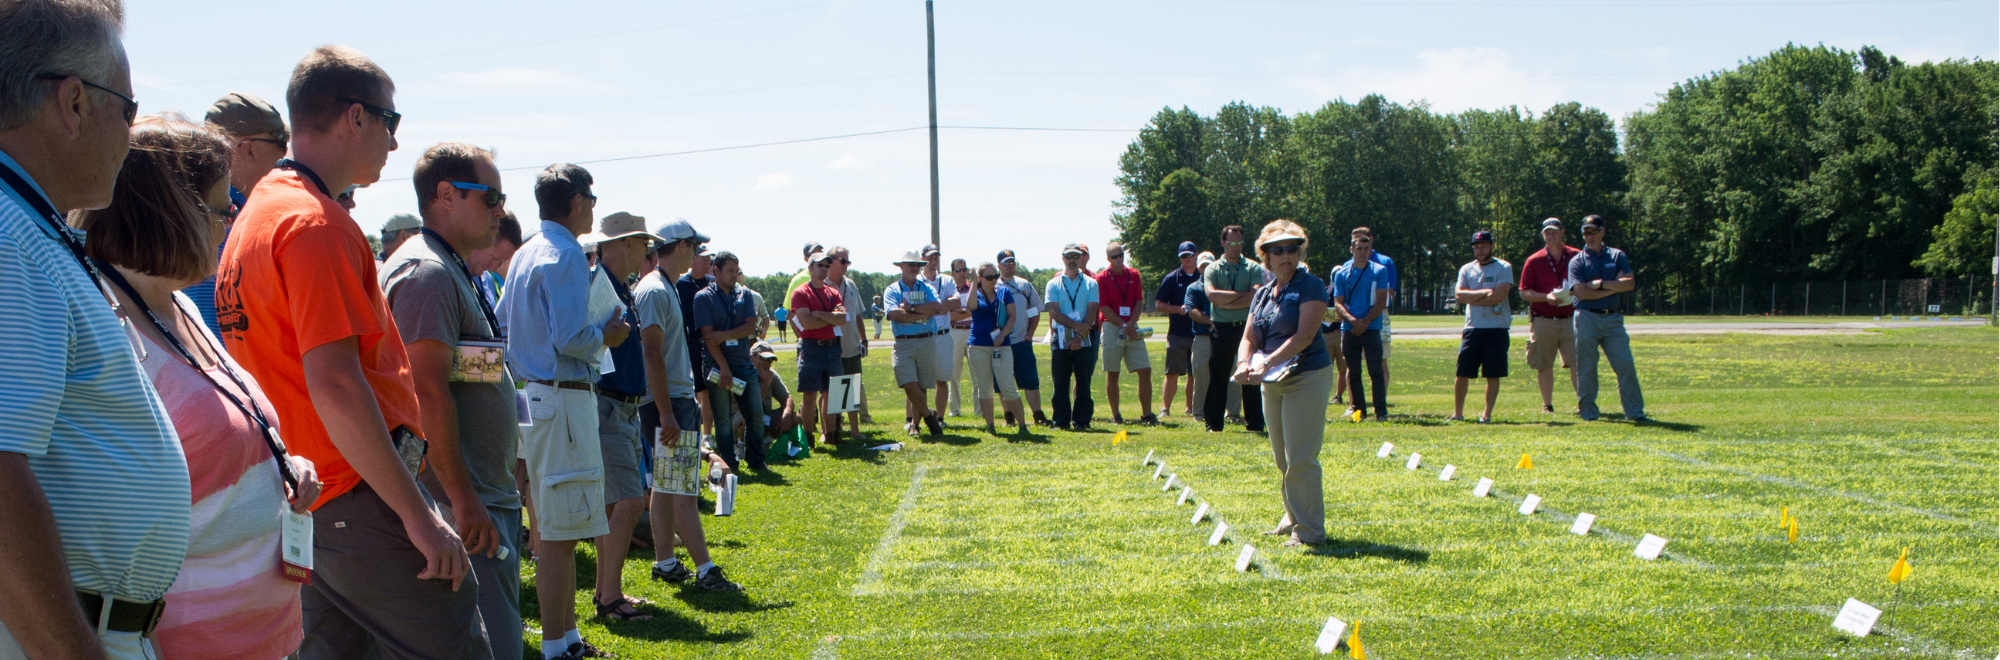 Vickie Wallace presenting to a group of people at the Turfgrass field day